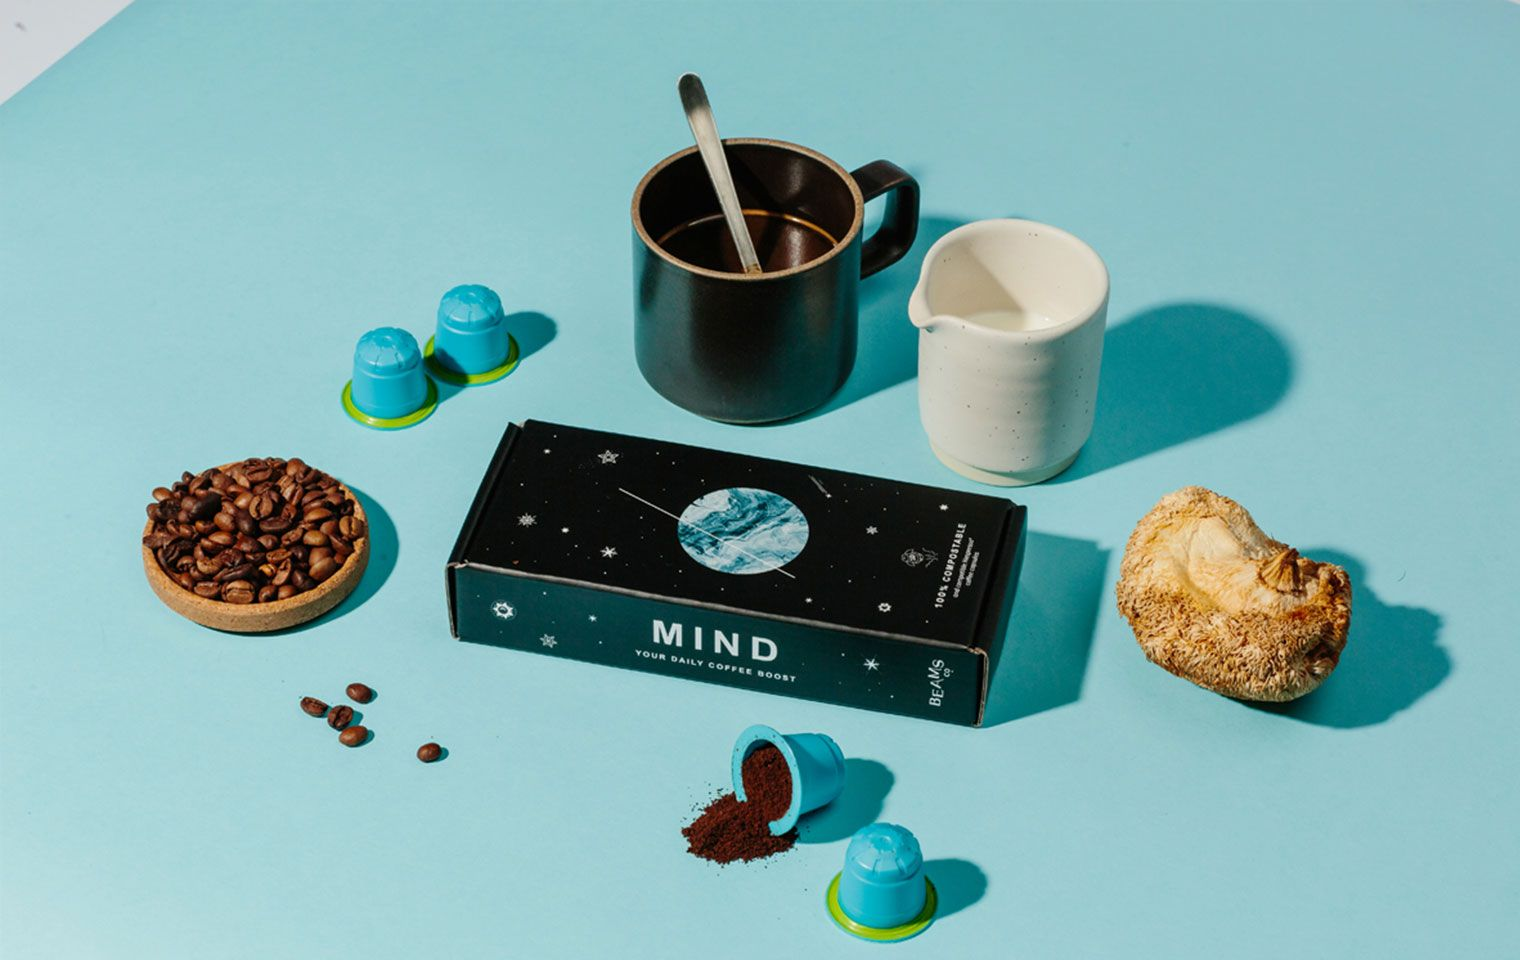 BEAMS Coffee Mailer Box for Coffee Capsules